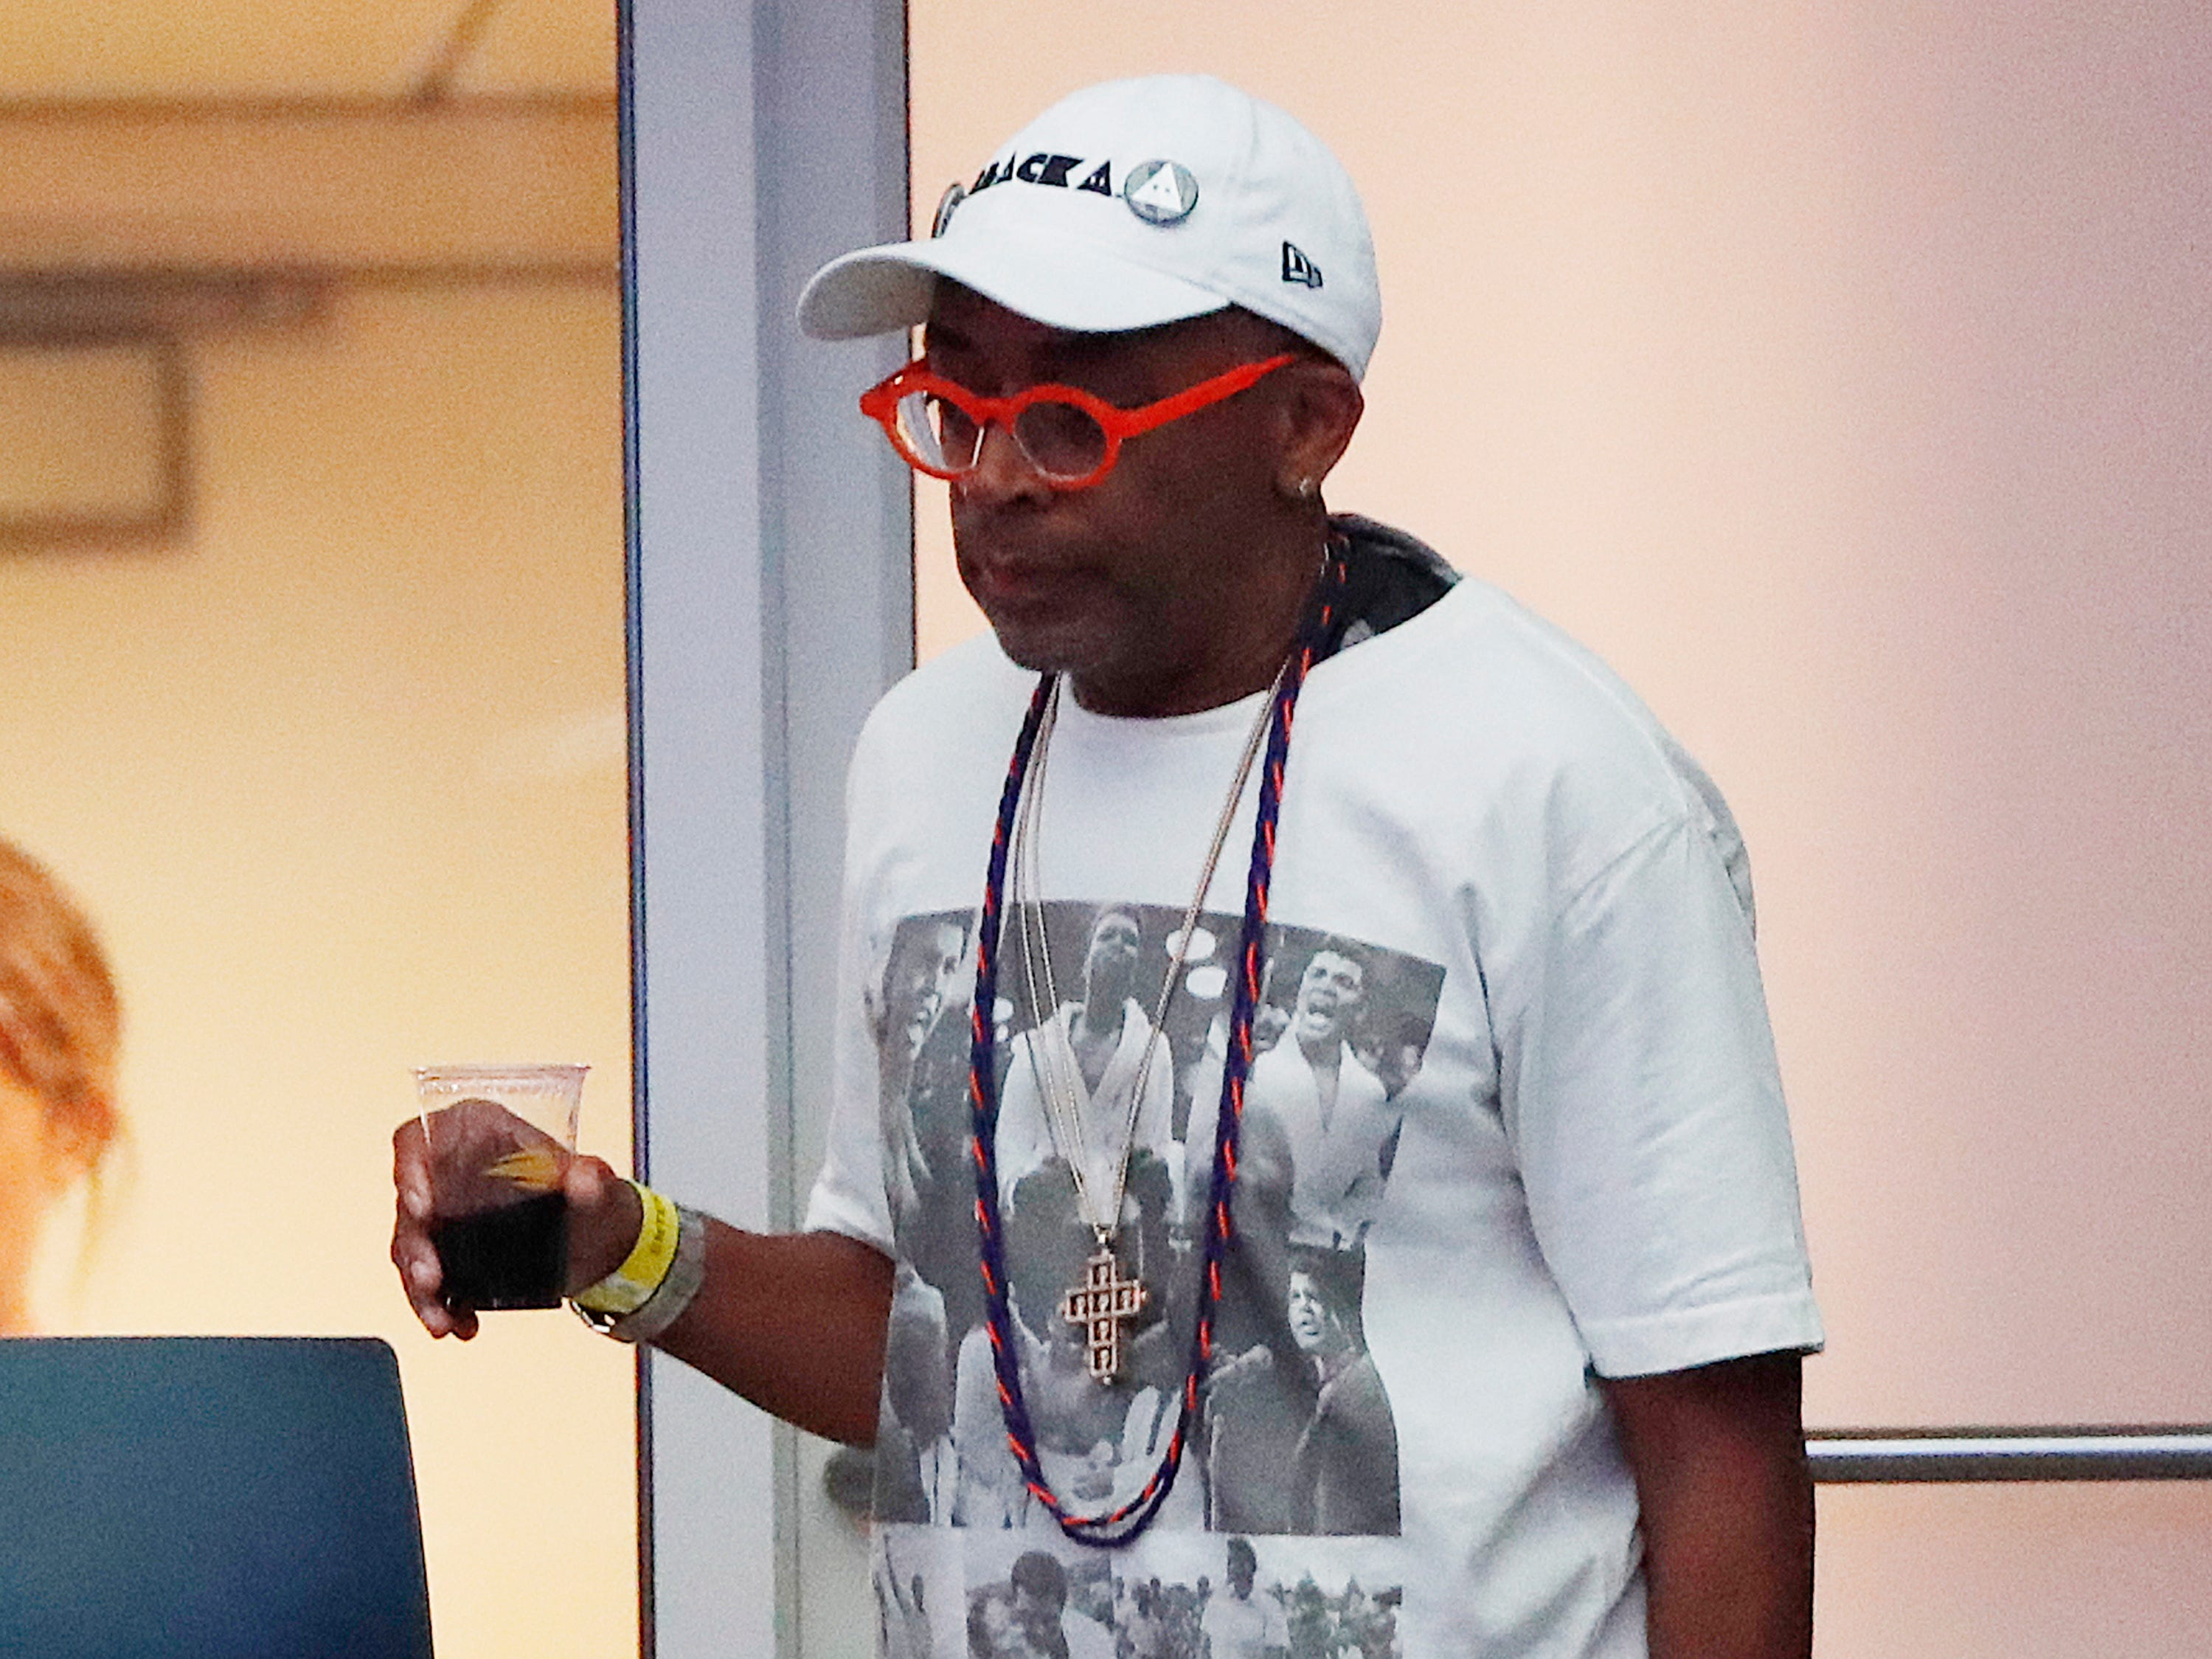 Spike Lee watches the semifinal match between Serena Williams and Anastasija Sevastova.